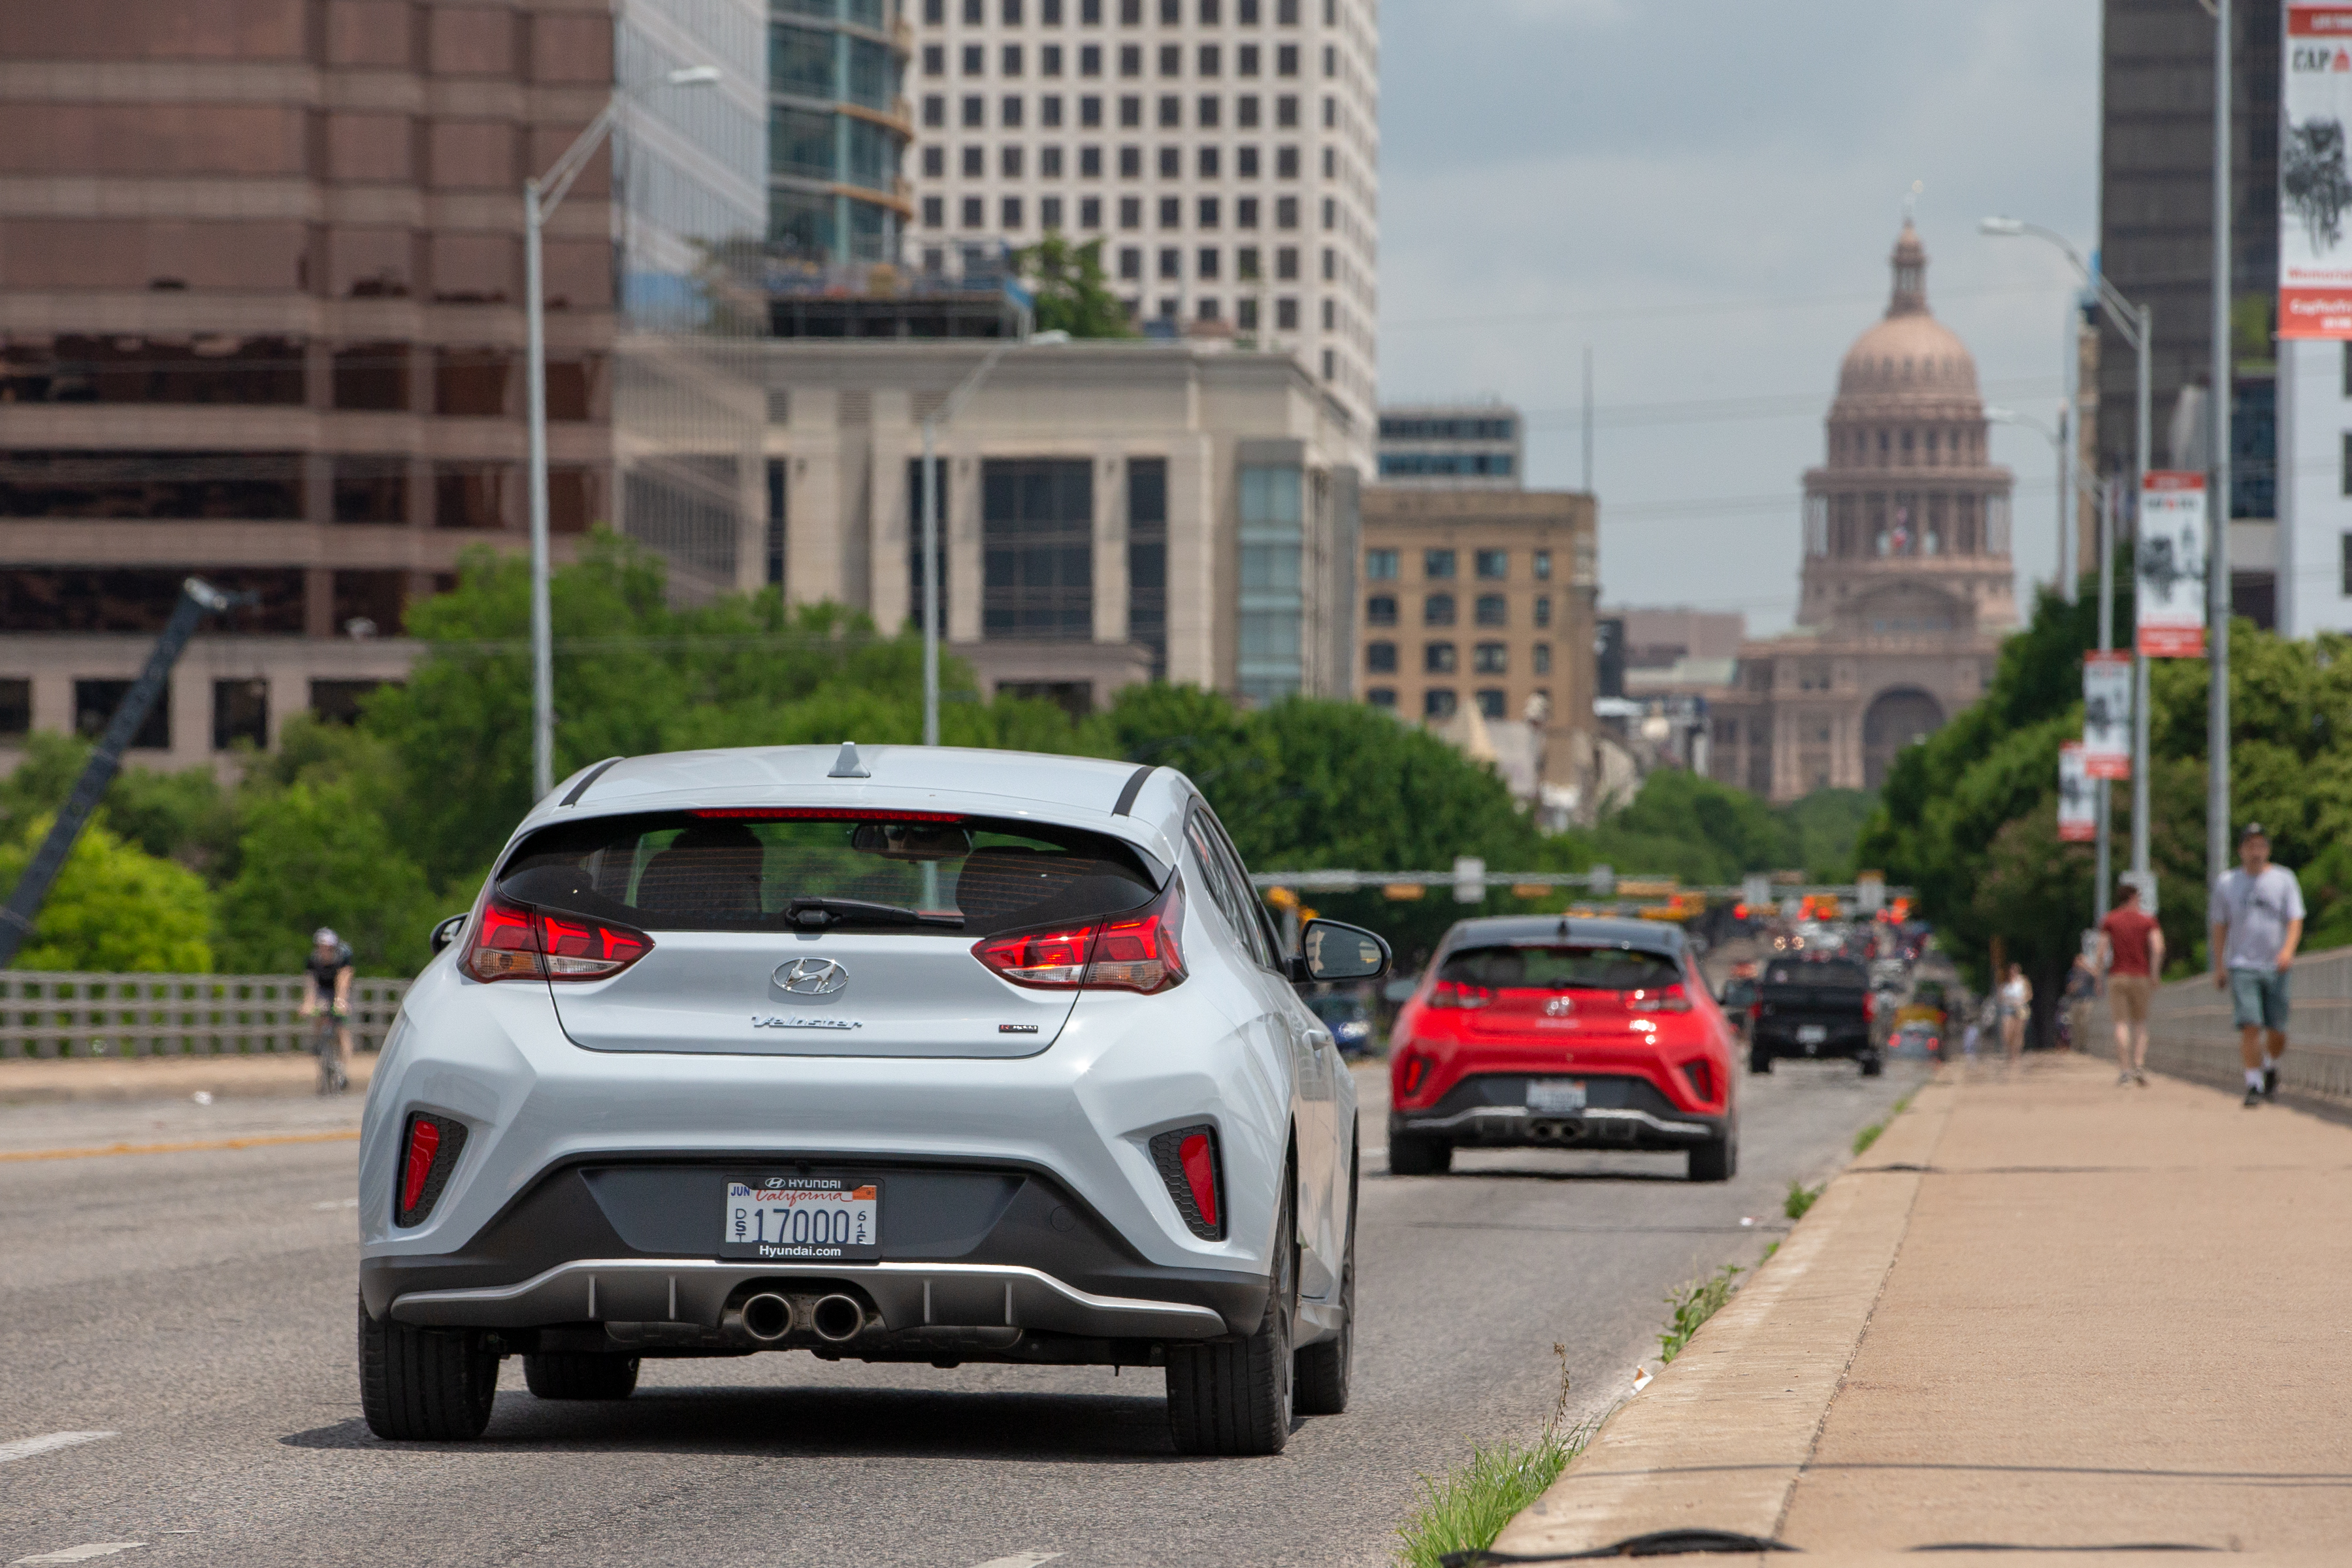 2019 Hyundai Veloster Starting at $18,500